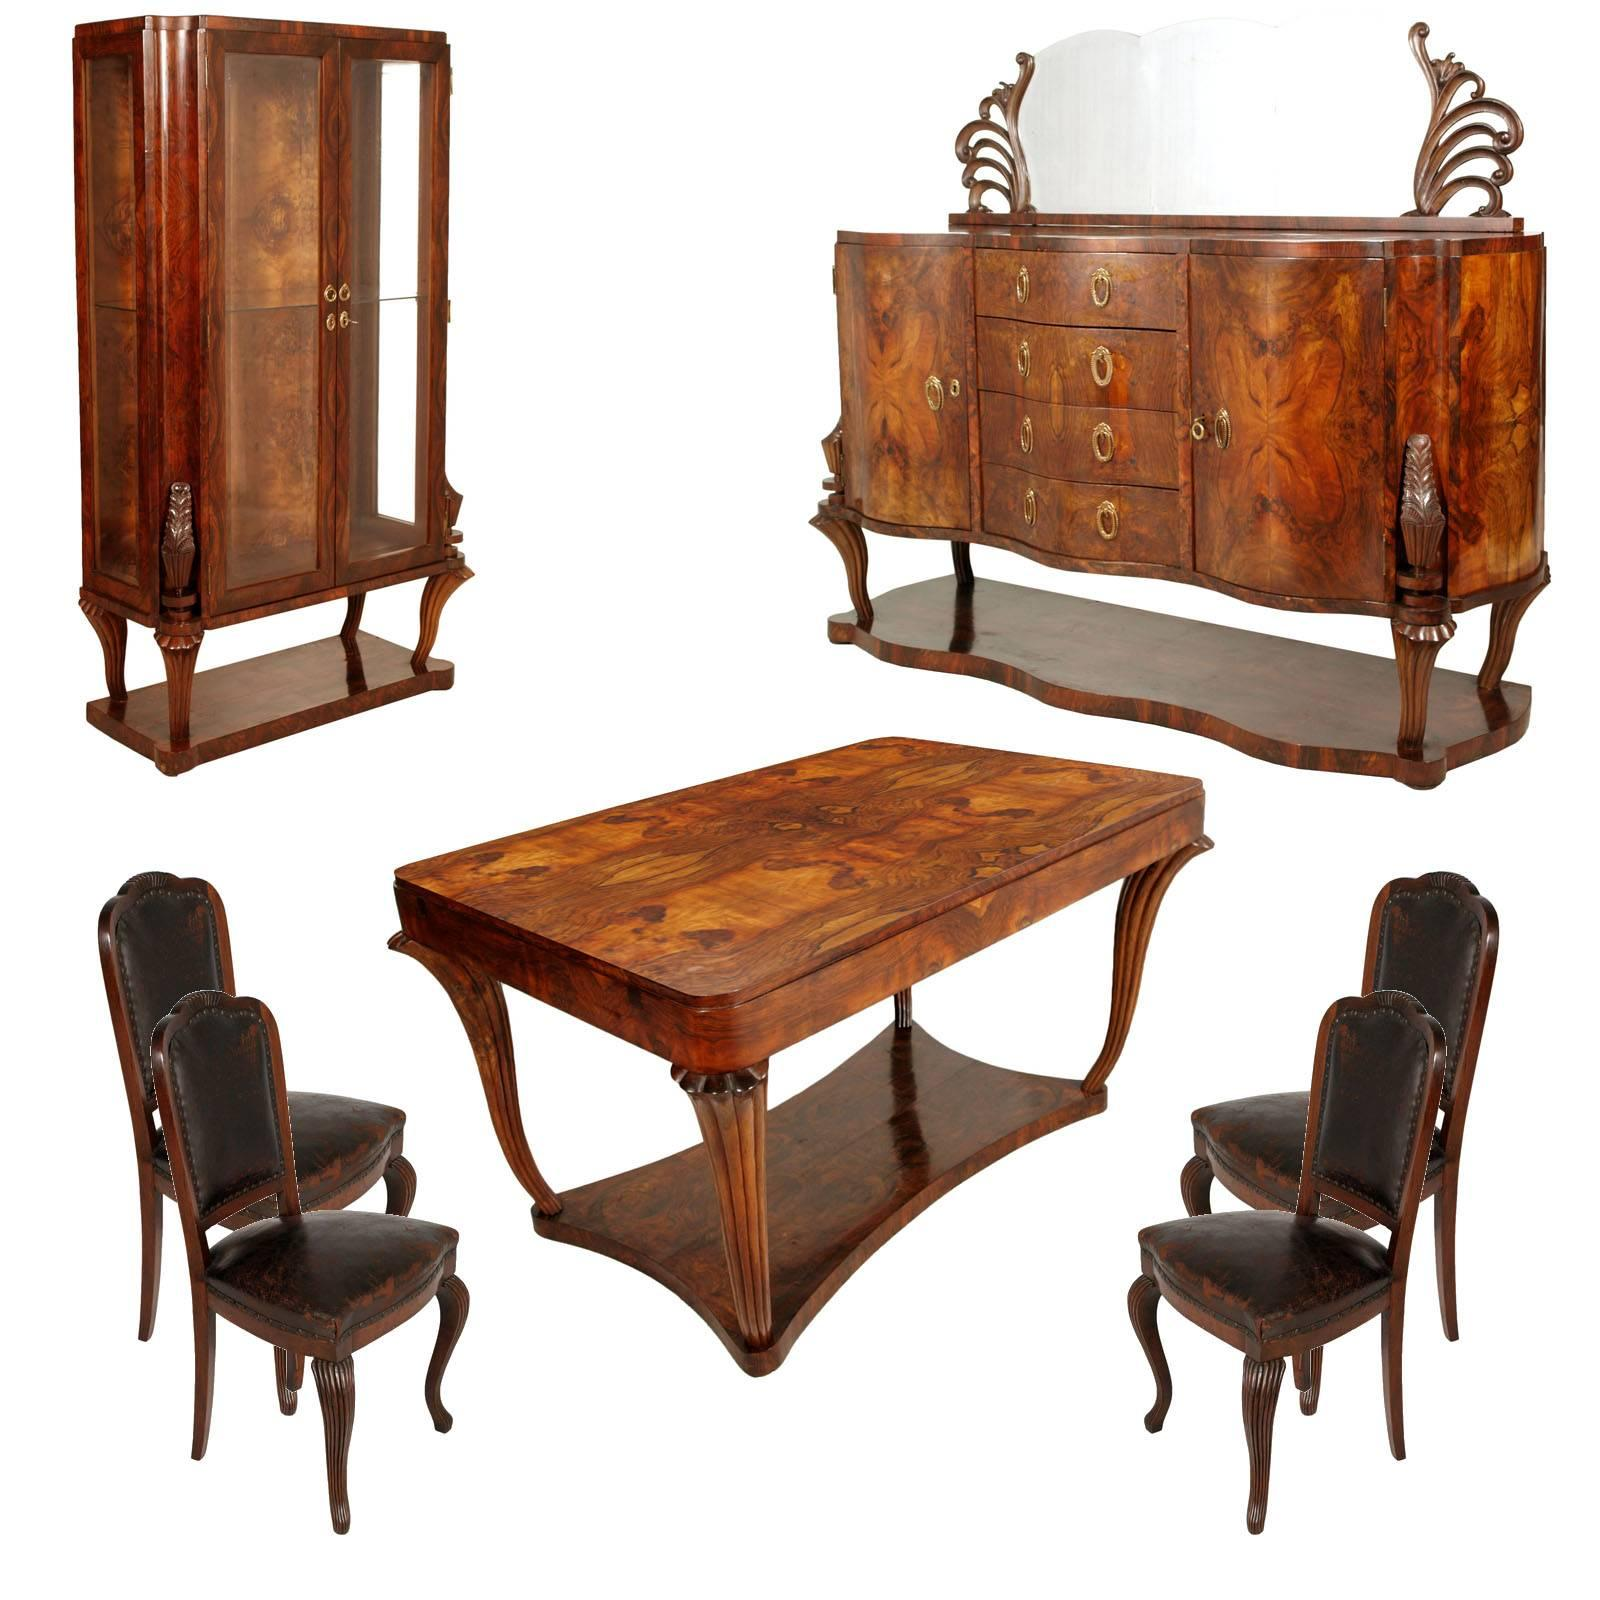 1920s Testolini U0026amp; Salviati Venice Baroque Art Deco Dining Room Set Burl  Walnut